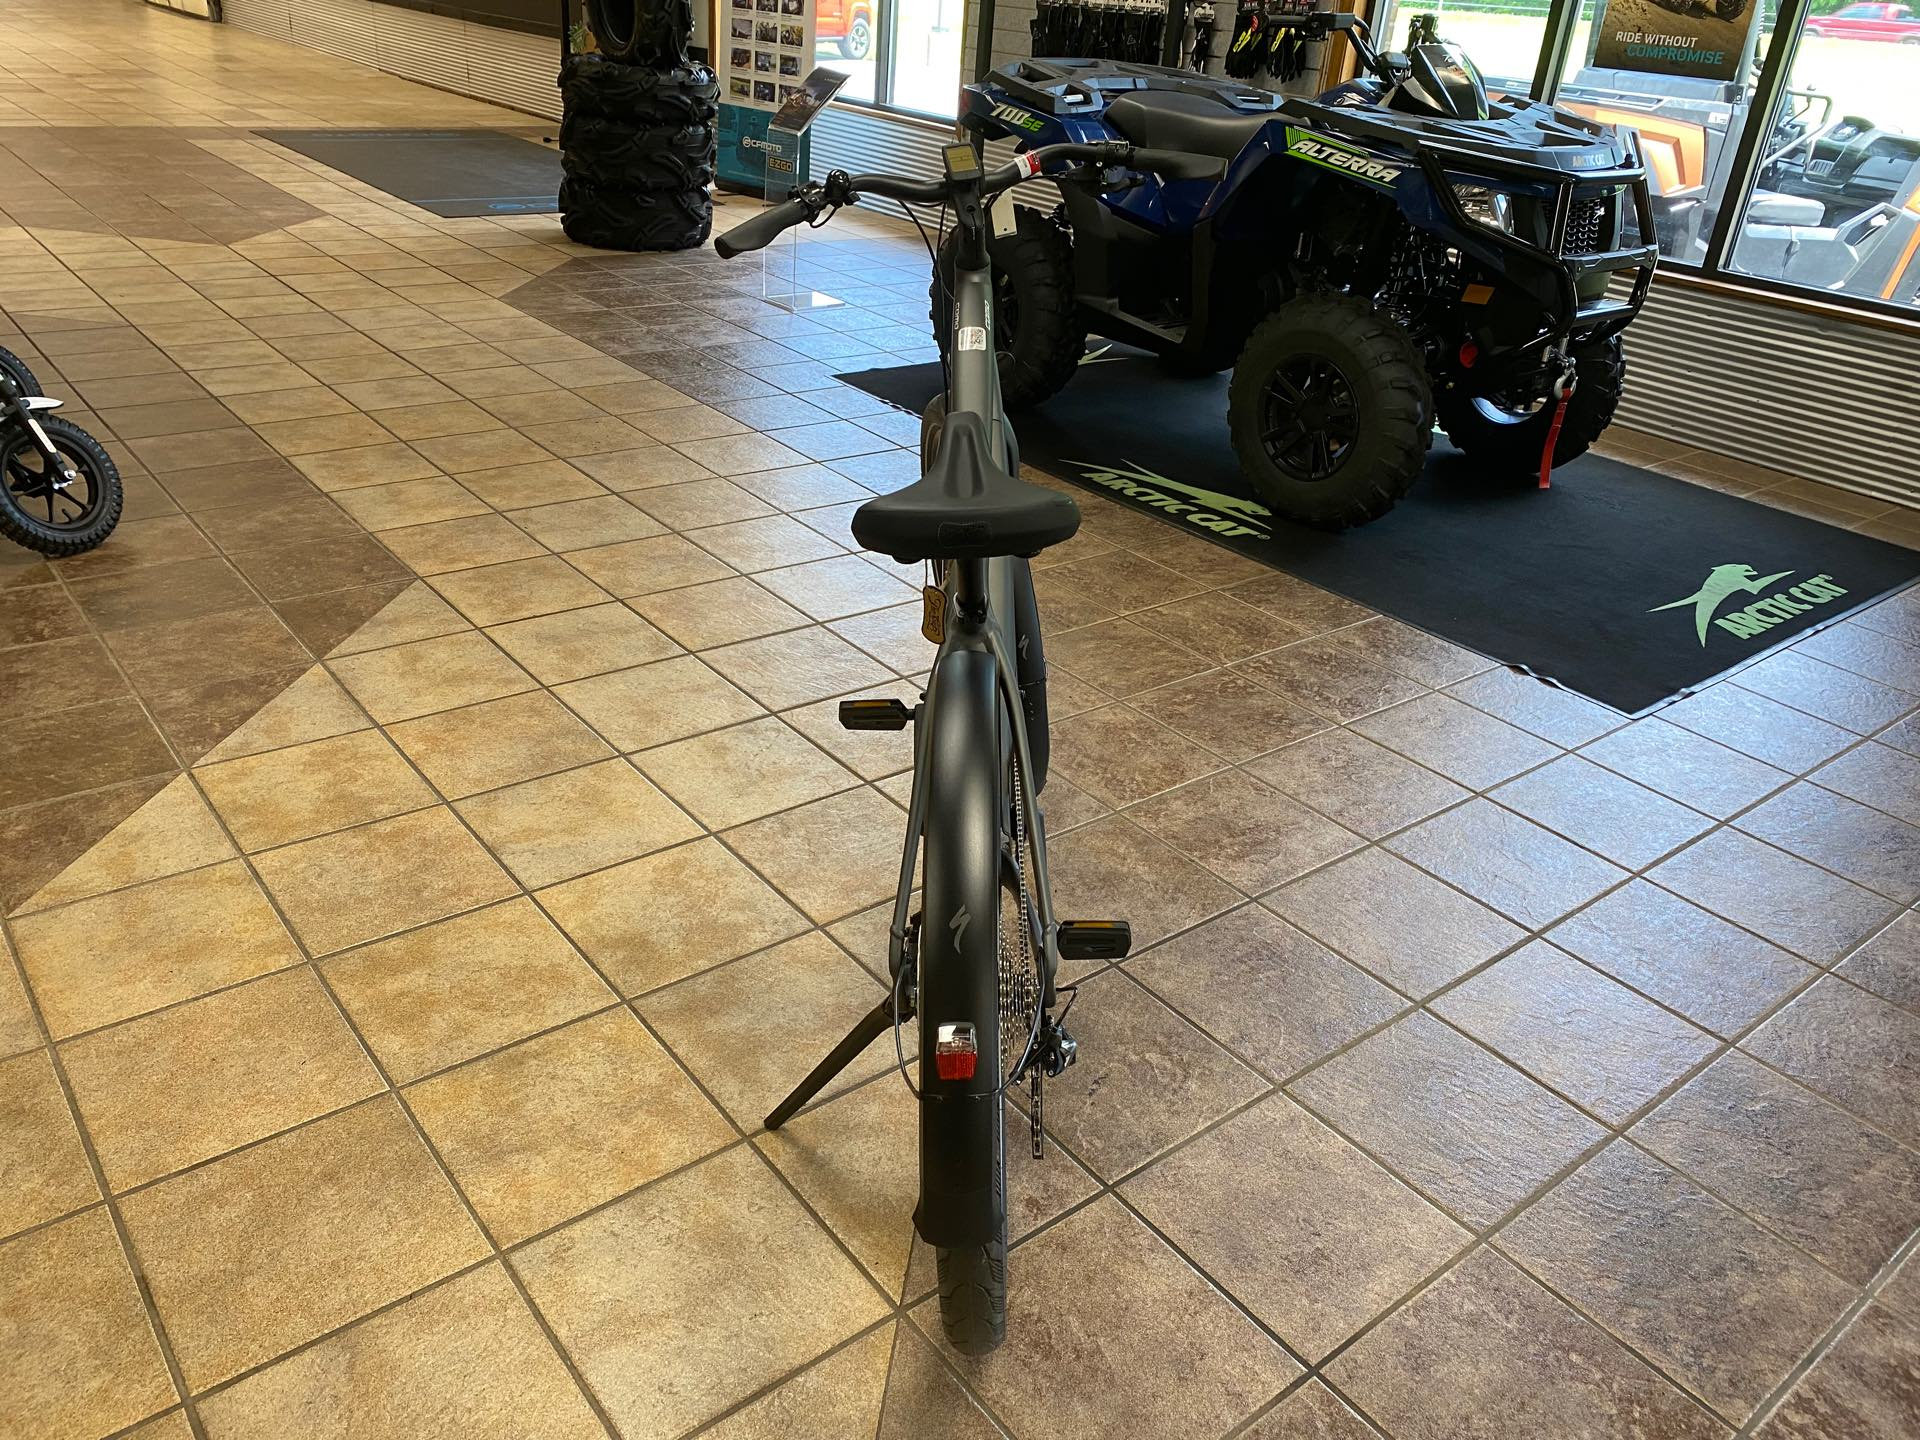 2021 Specialized Turbo E Bikes Como 30 650b at Gold Star Outdoors